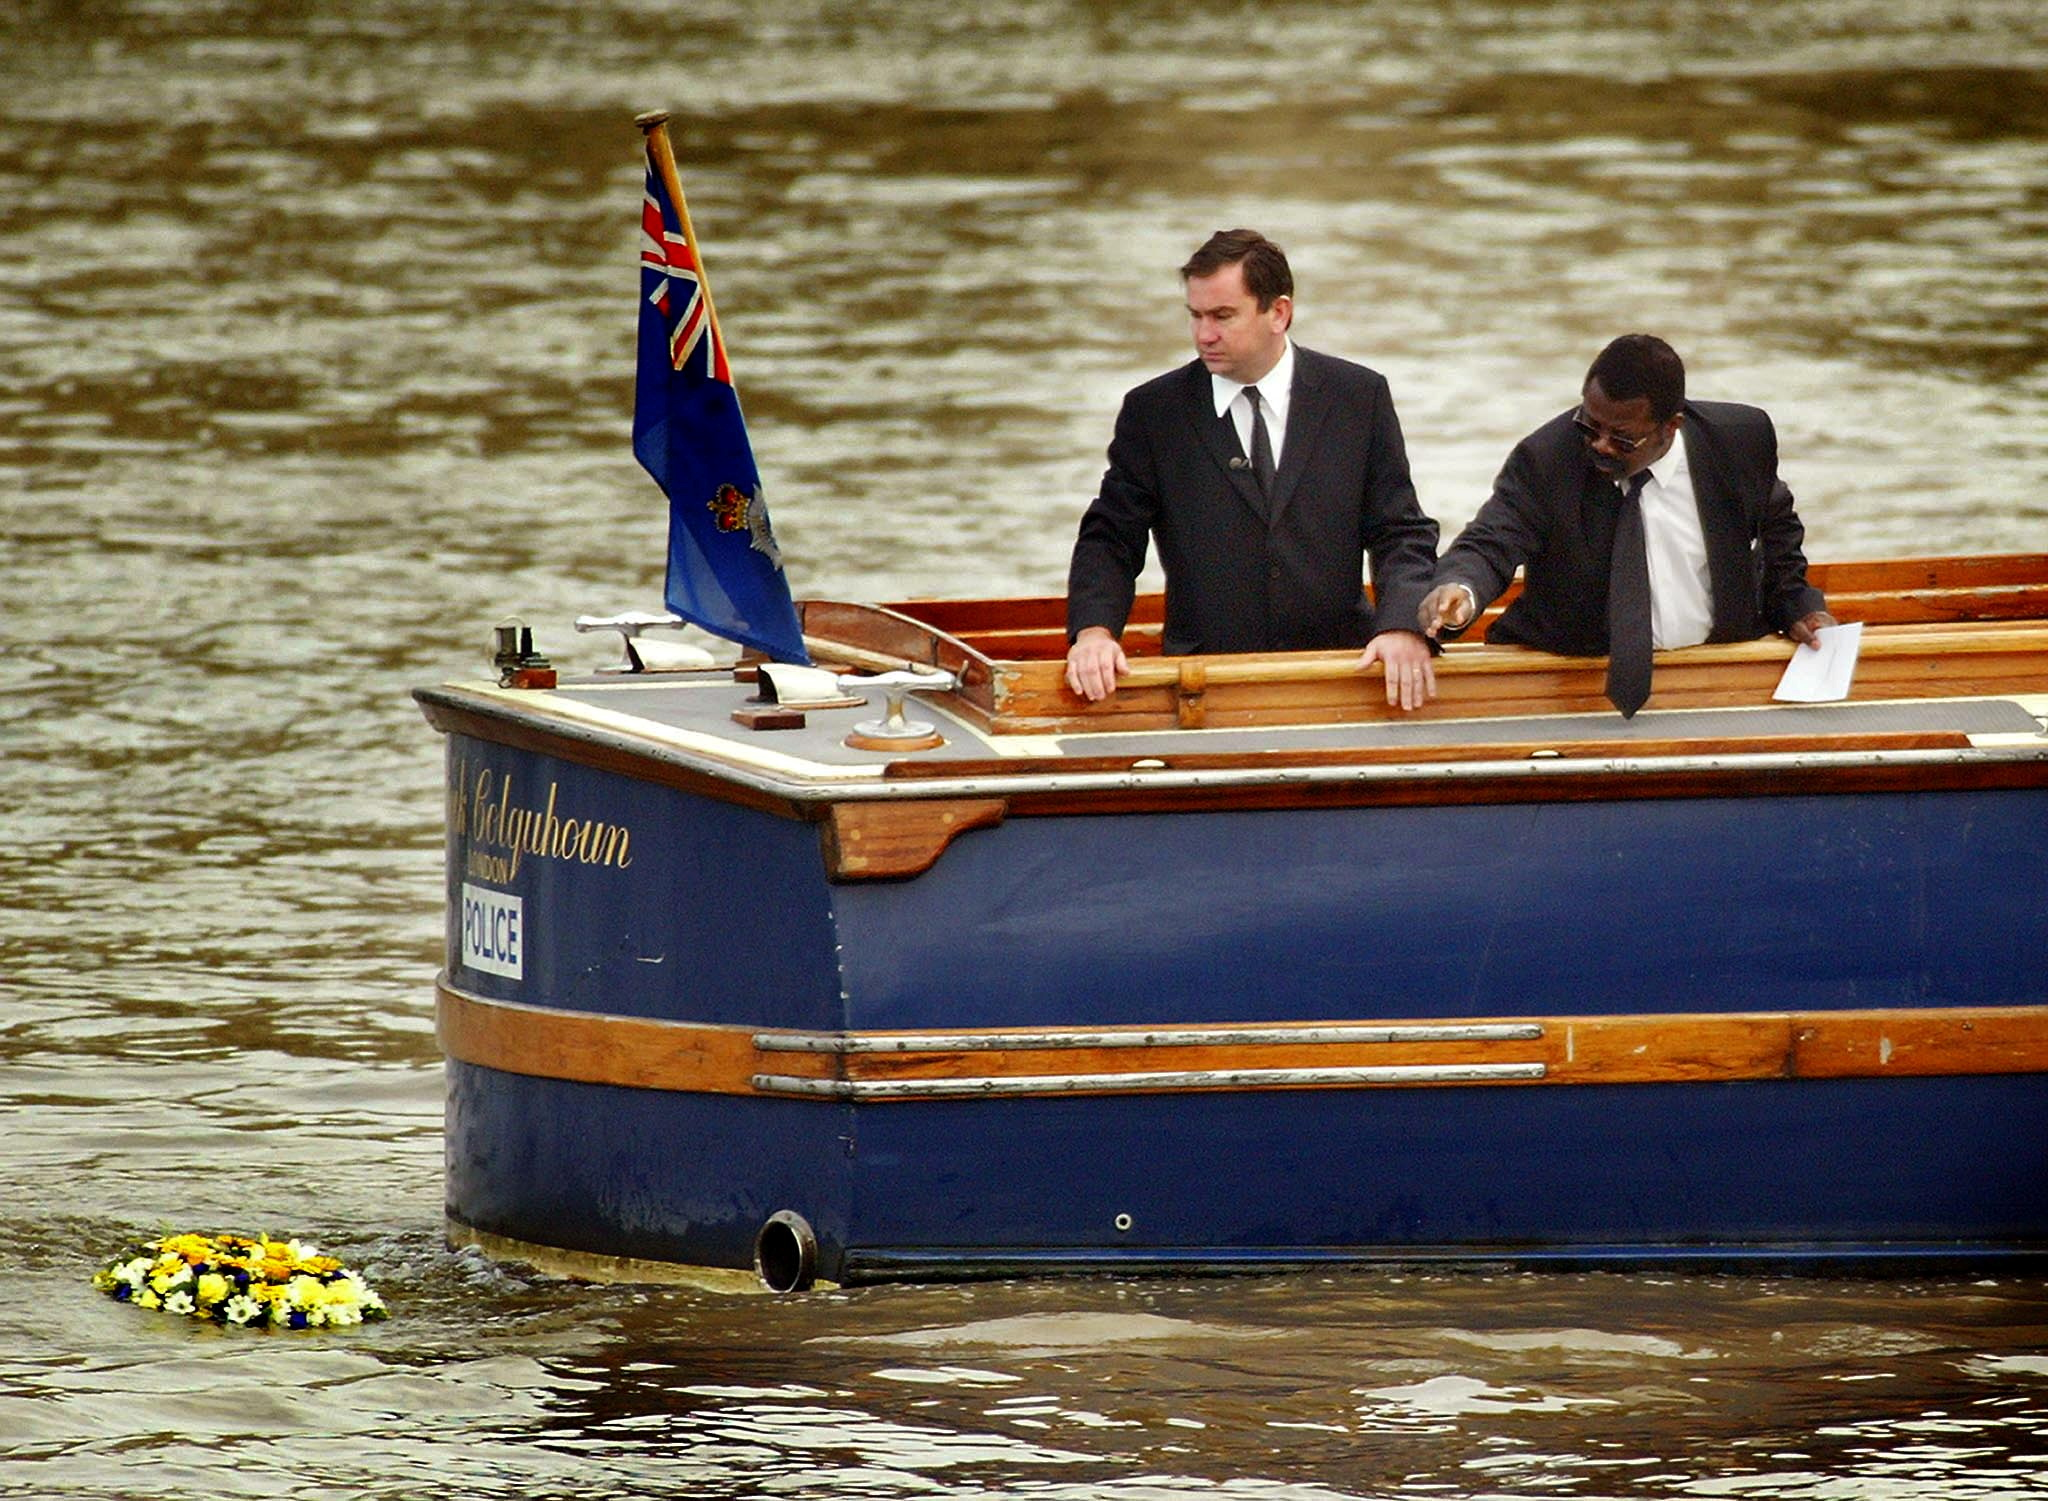 Detective Inspector Will O'Reilly (L) and John Azah of the Independent Advisory Group place a wreath in the River Thames at the place where the torso of a boy, who police have called 'Adam', was found a year ago, September 21, 2002. A minutes silence was observed at a memorial service held in City Hall before the wreath laying. REUTERS/Peter Macdiarmid/File Photo